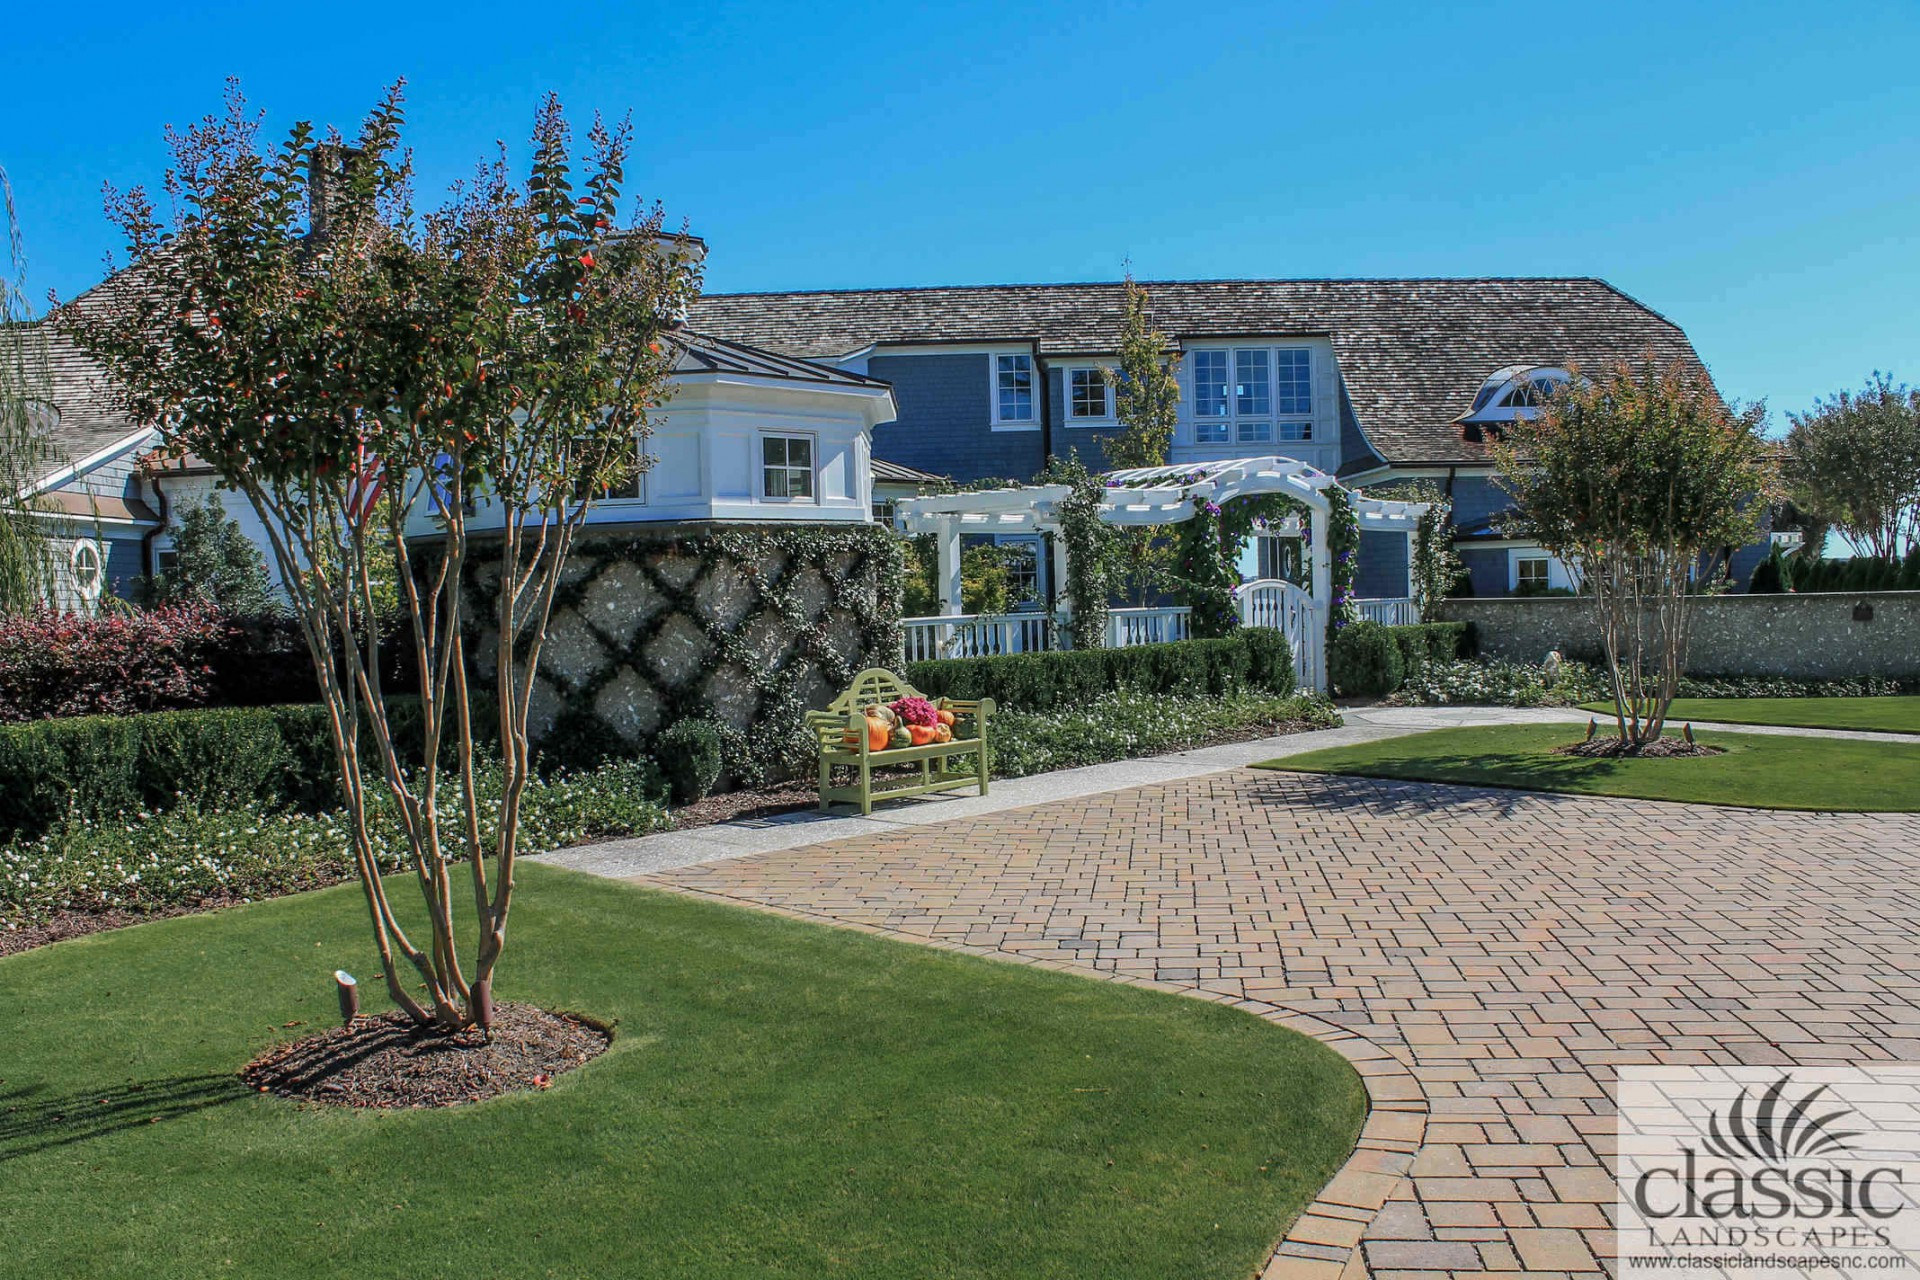 Classic Landscapes, Landscaping and Design | Wilmington, NC